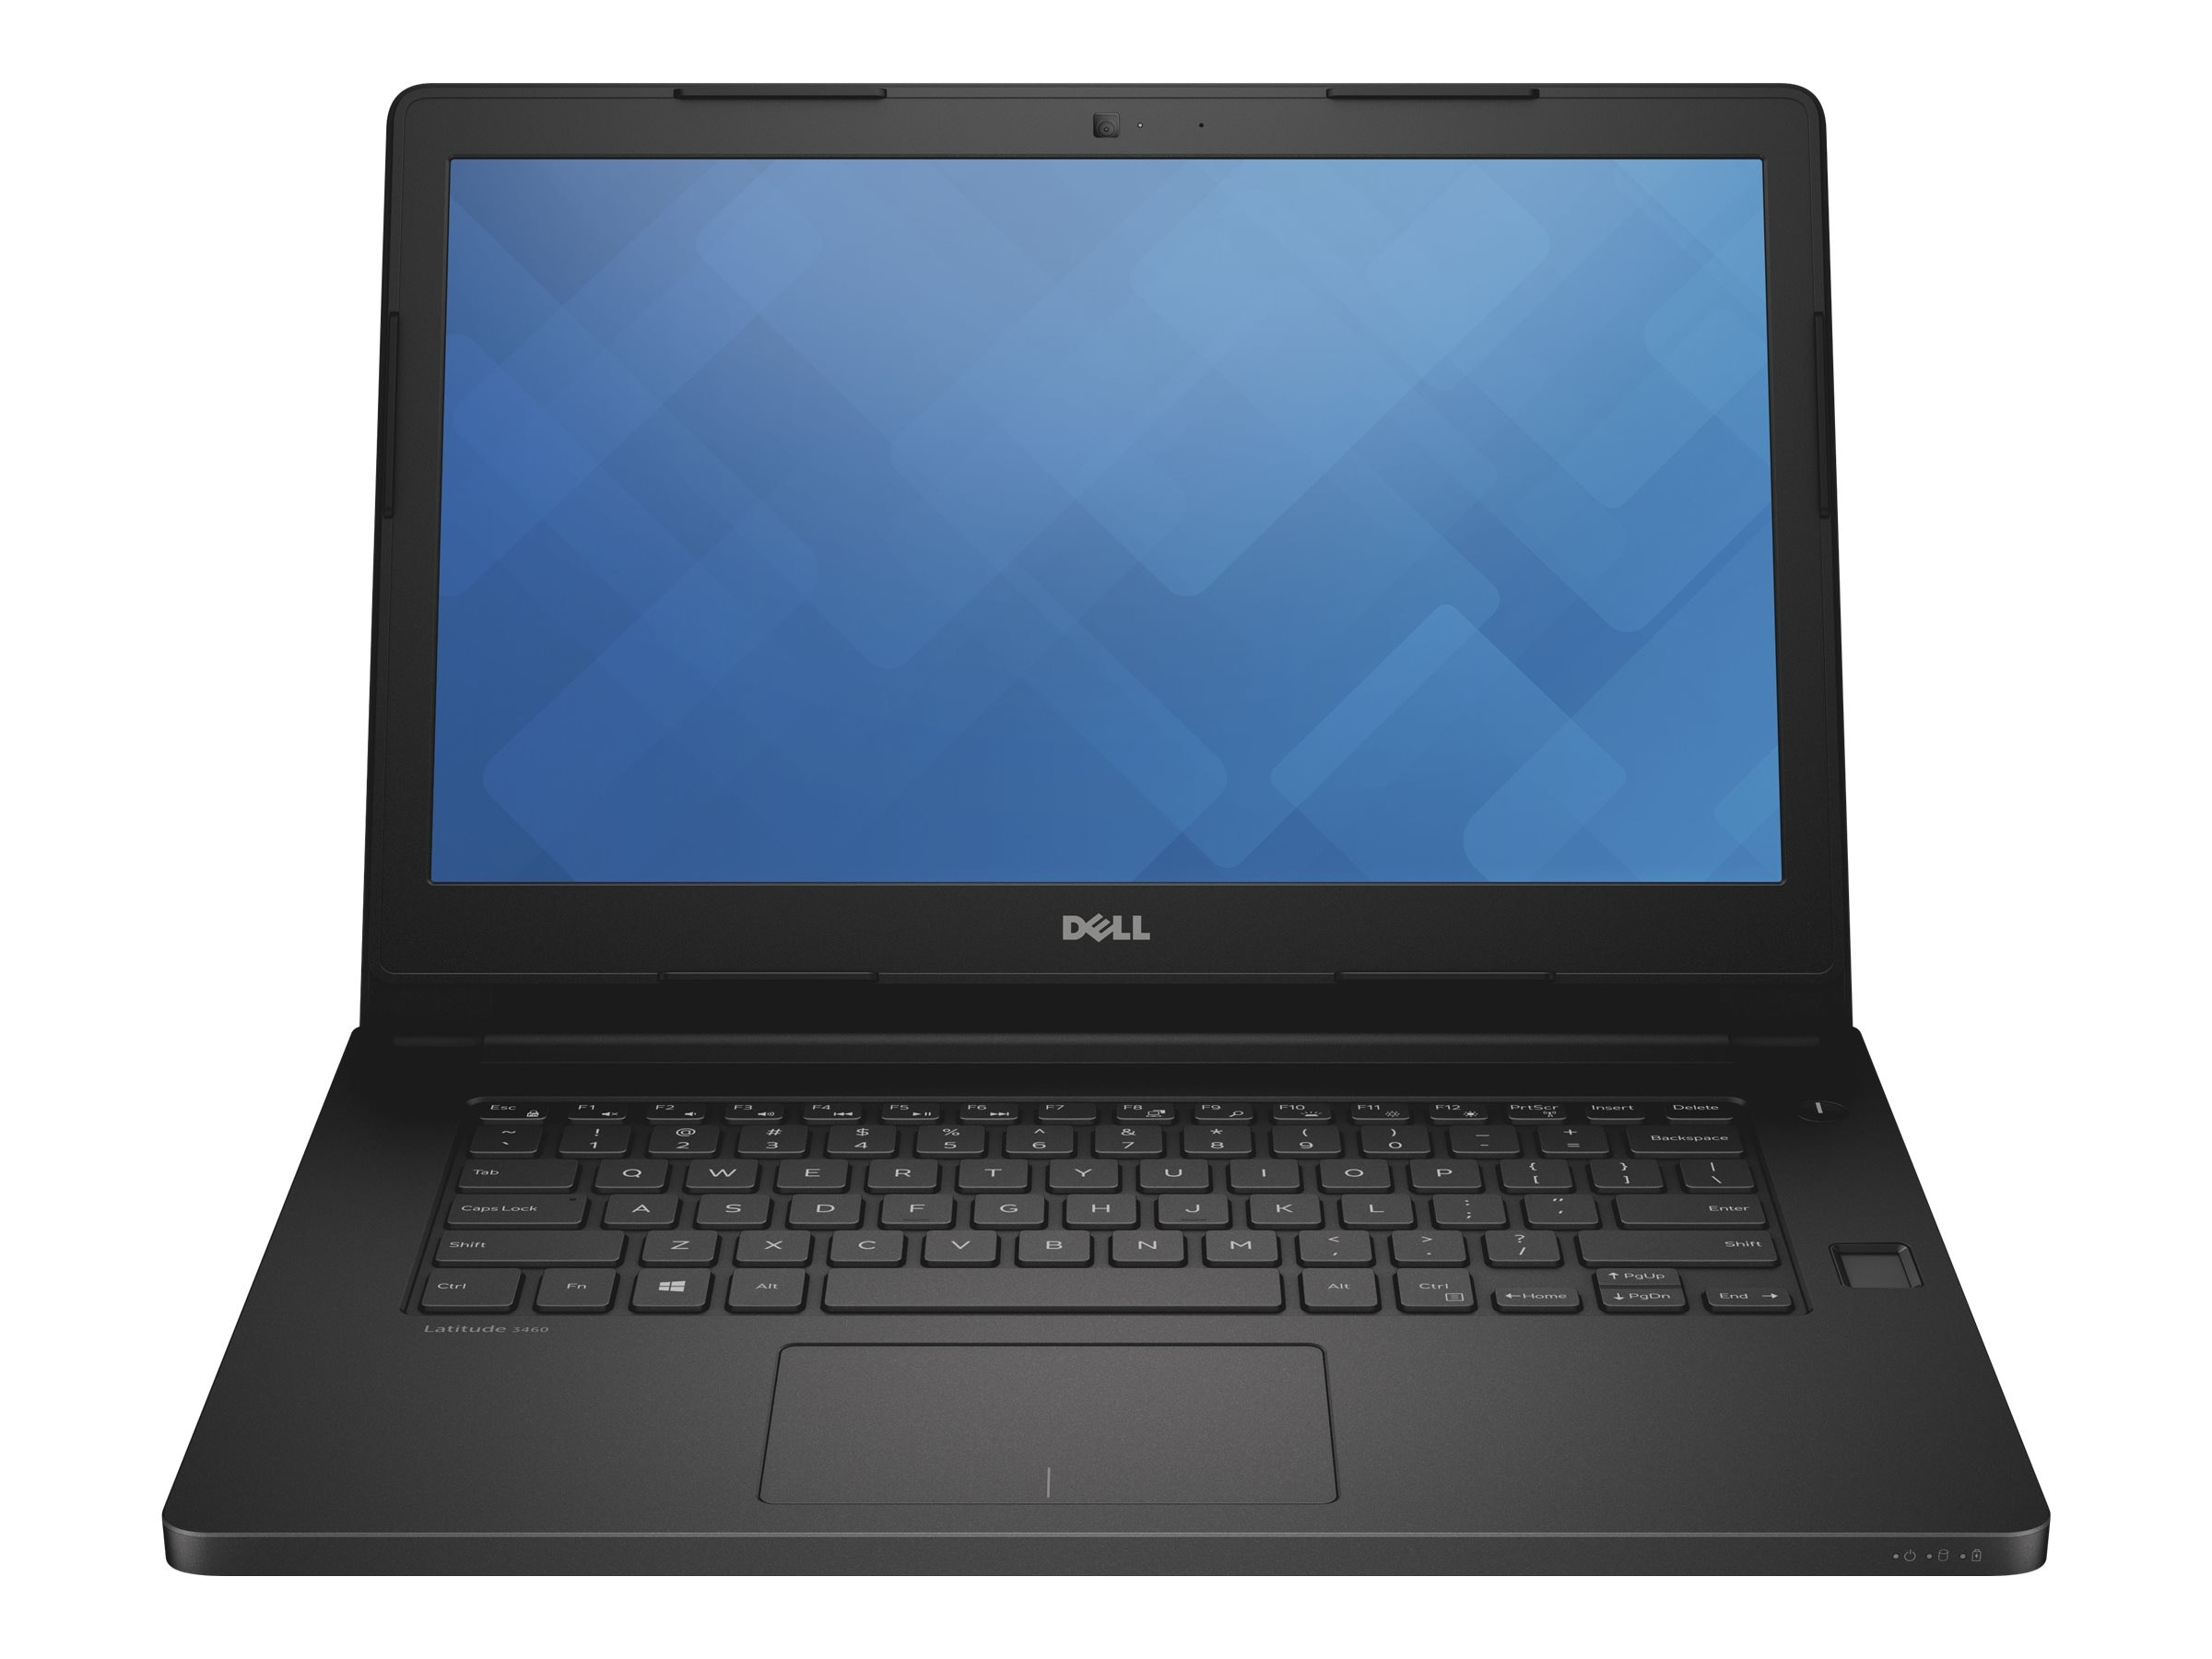 Dell Latitude 3470 Core i3-6100U 2.3GHz 4GB 500GB agn BT 4C 14 HD W10P64, D7D2G